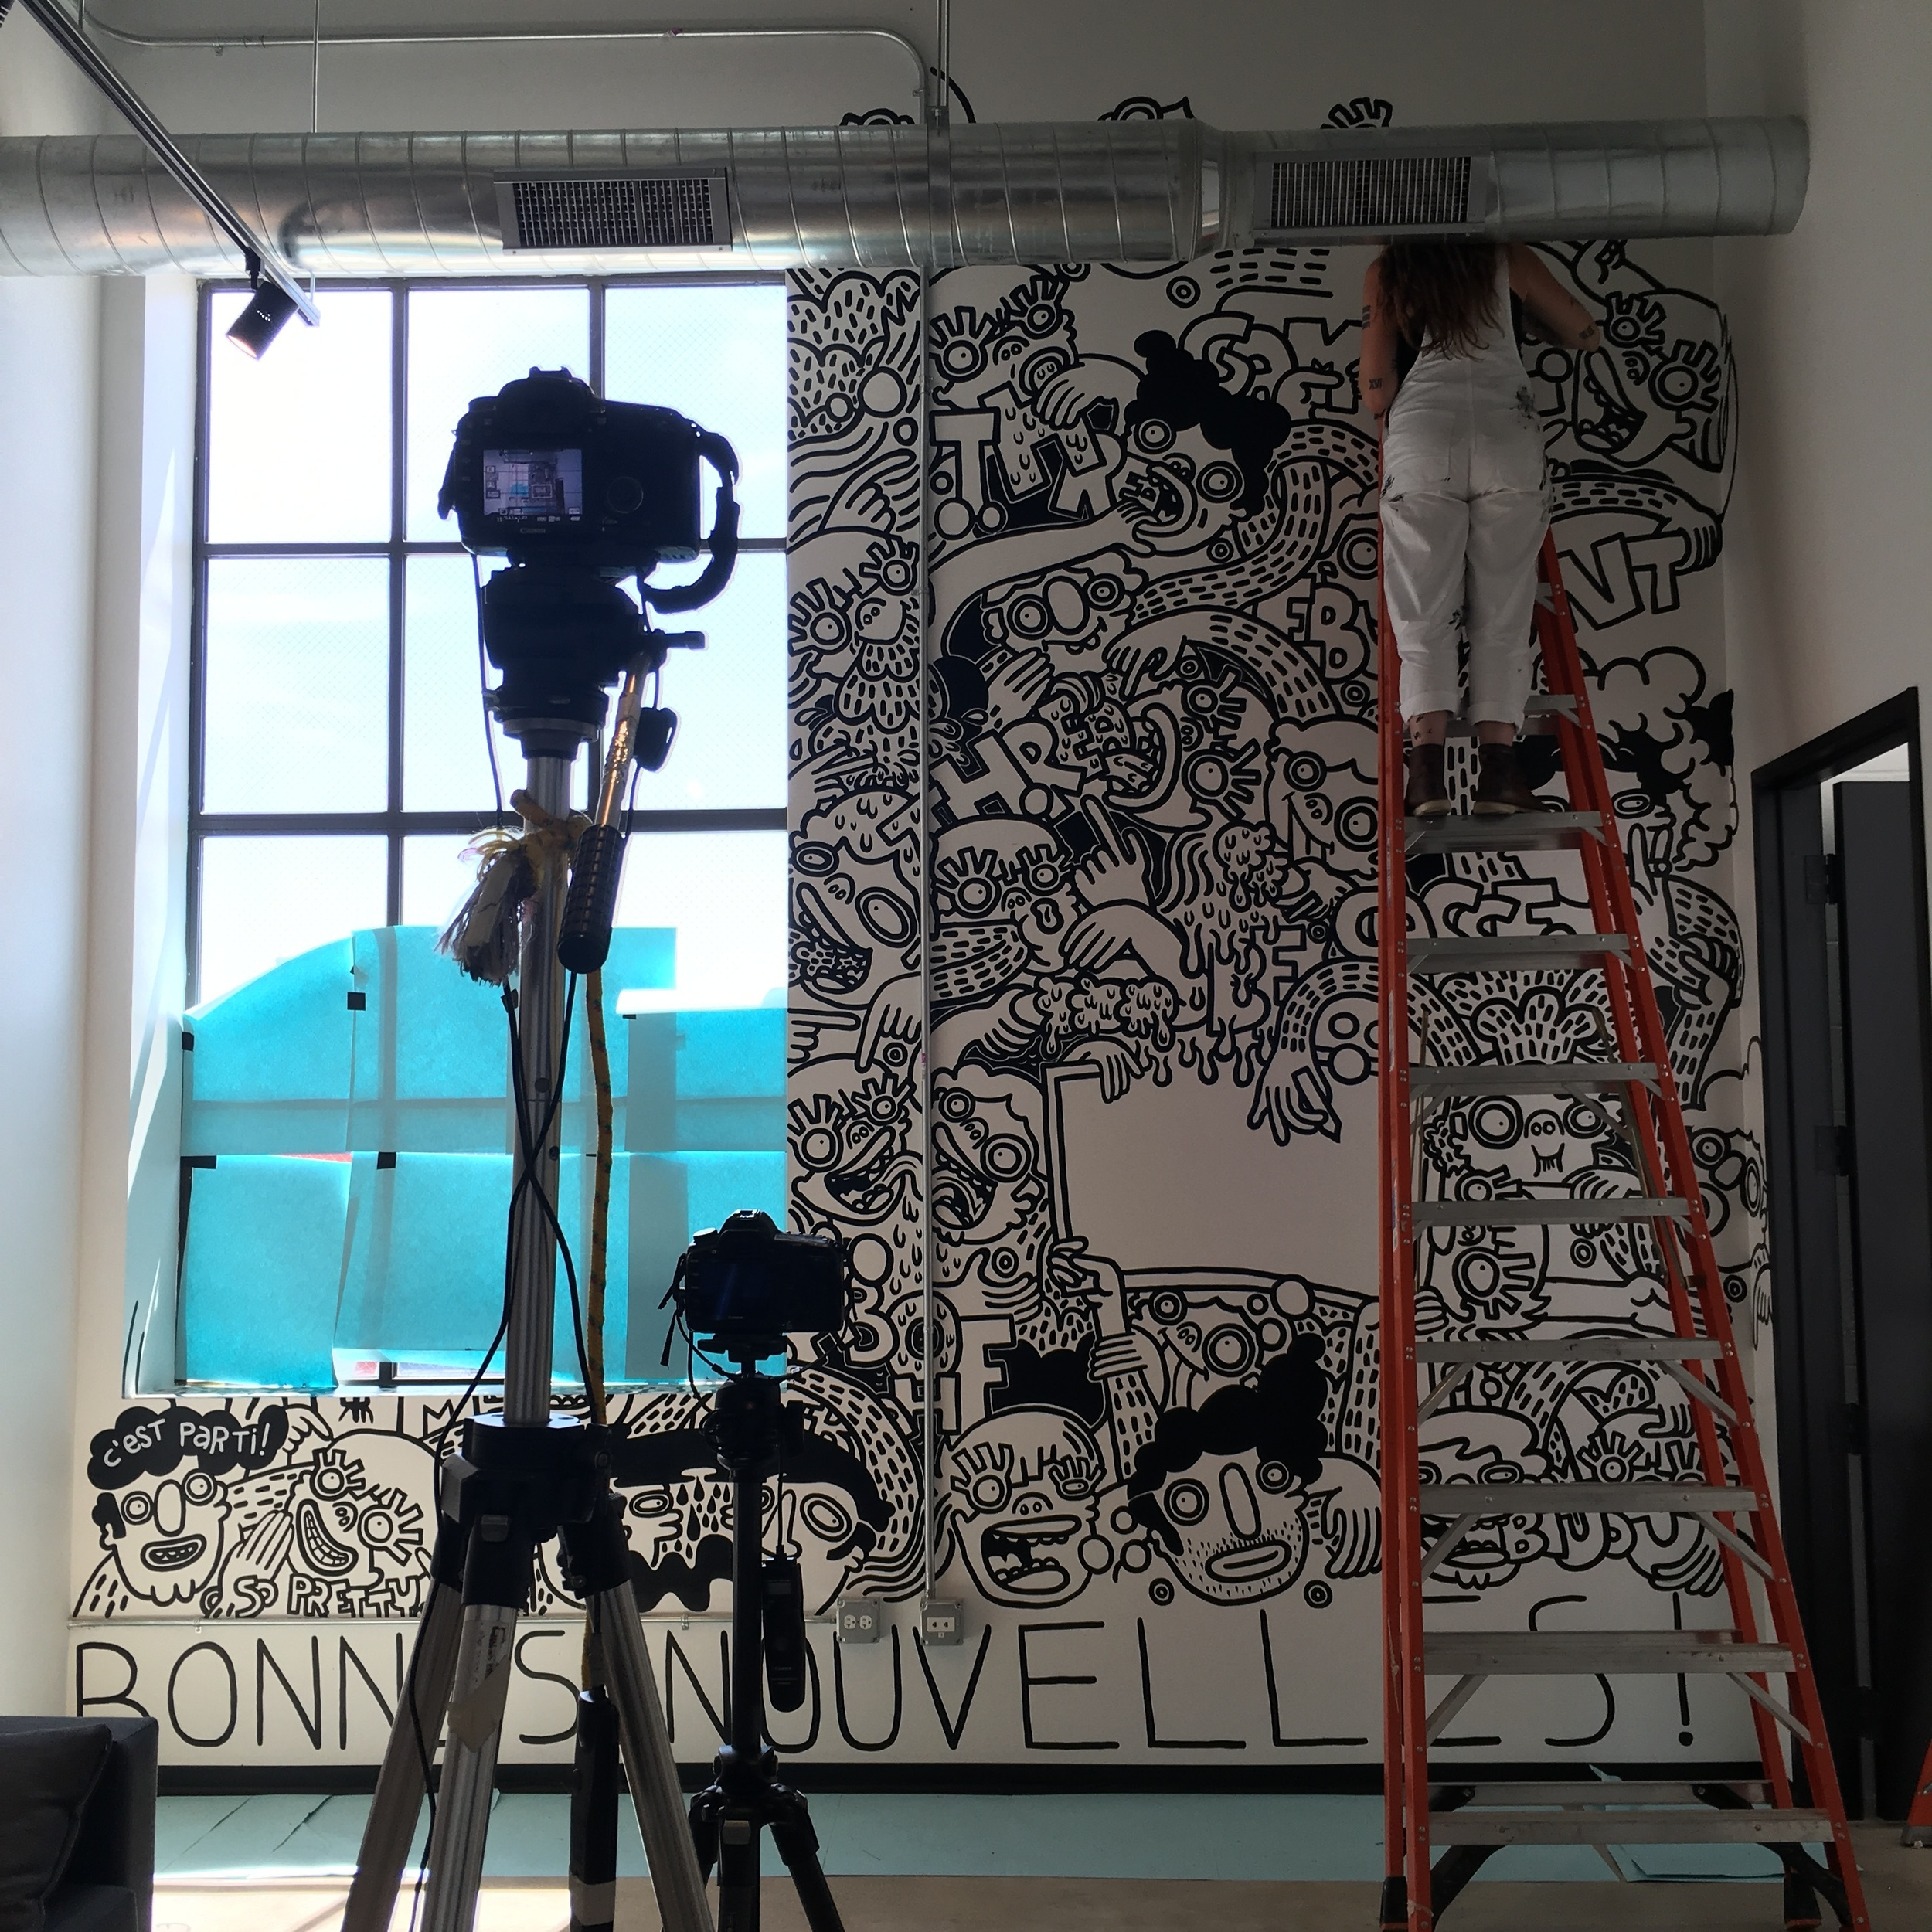 SO CLOSE TO BEING DONE. THOSE TIMELAPSE CAMERAS TOOK THOUSANDS OF PICTURES DURING THE CREATION OF THIS MURAL.